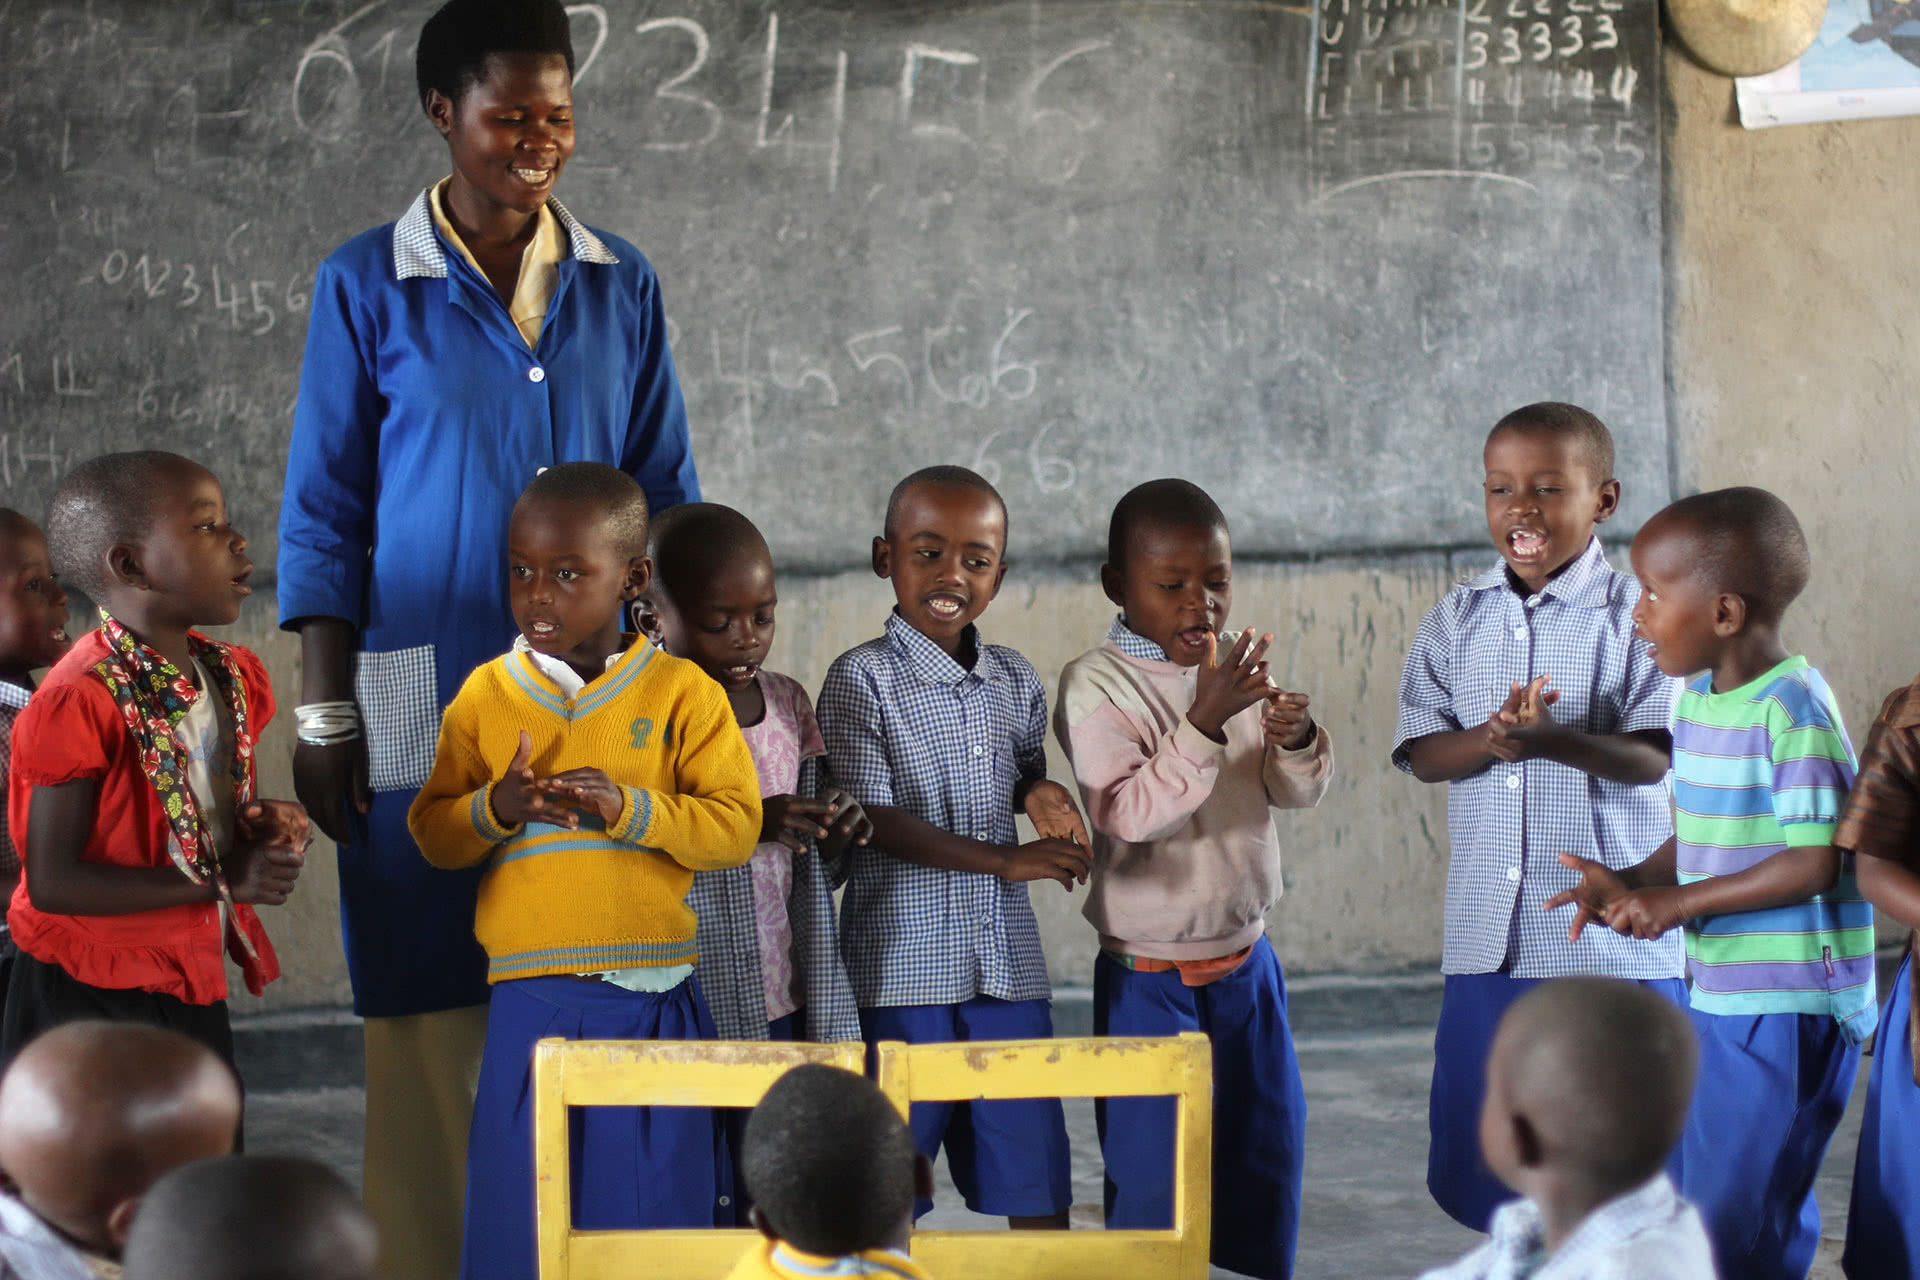 safety-appeal-featured-image-1920-rwanda-classroom-smiling1